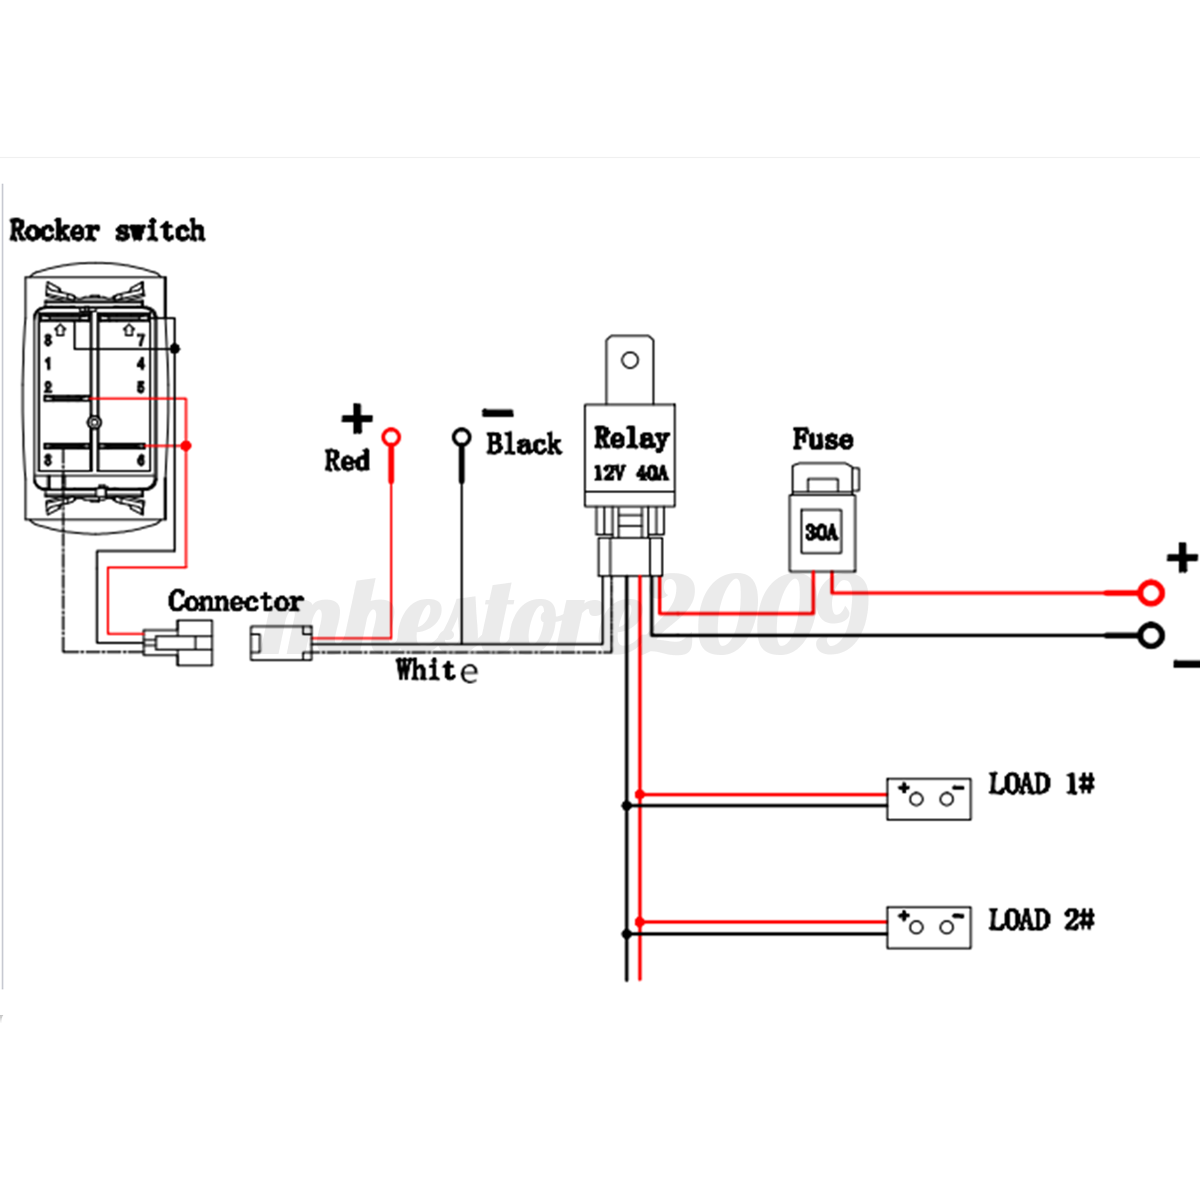 Ford Ranger Wiring Diagramelectrical together with Wiring Harness 12v 40a Wiring Harness Kit Fuse Relay For Two Led Work Driving Light Bar Up To 300w in addition 291674038166 moreover 311519809414 likewise Product product id 488. on make a wiring harness for led light bar